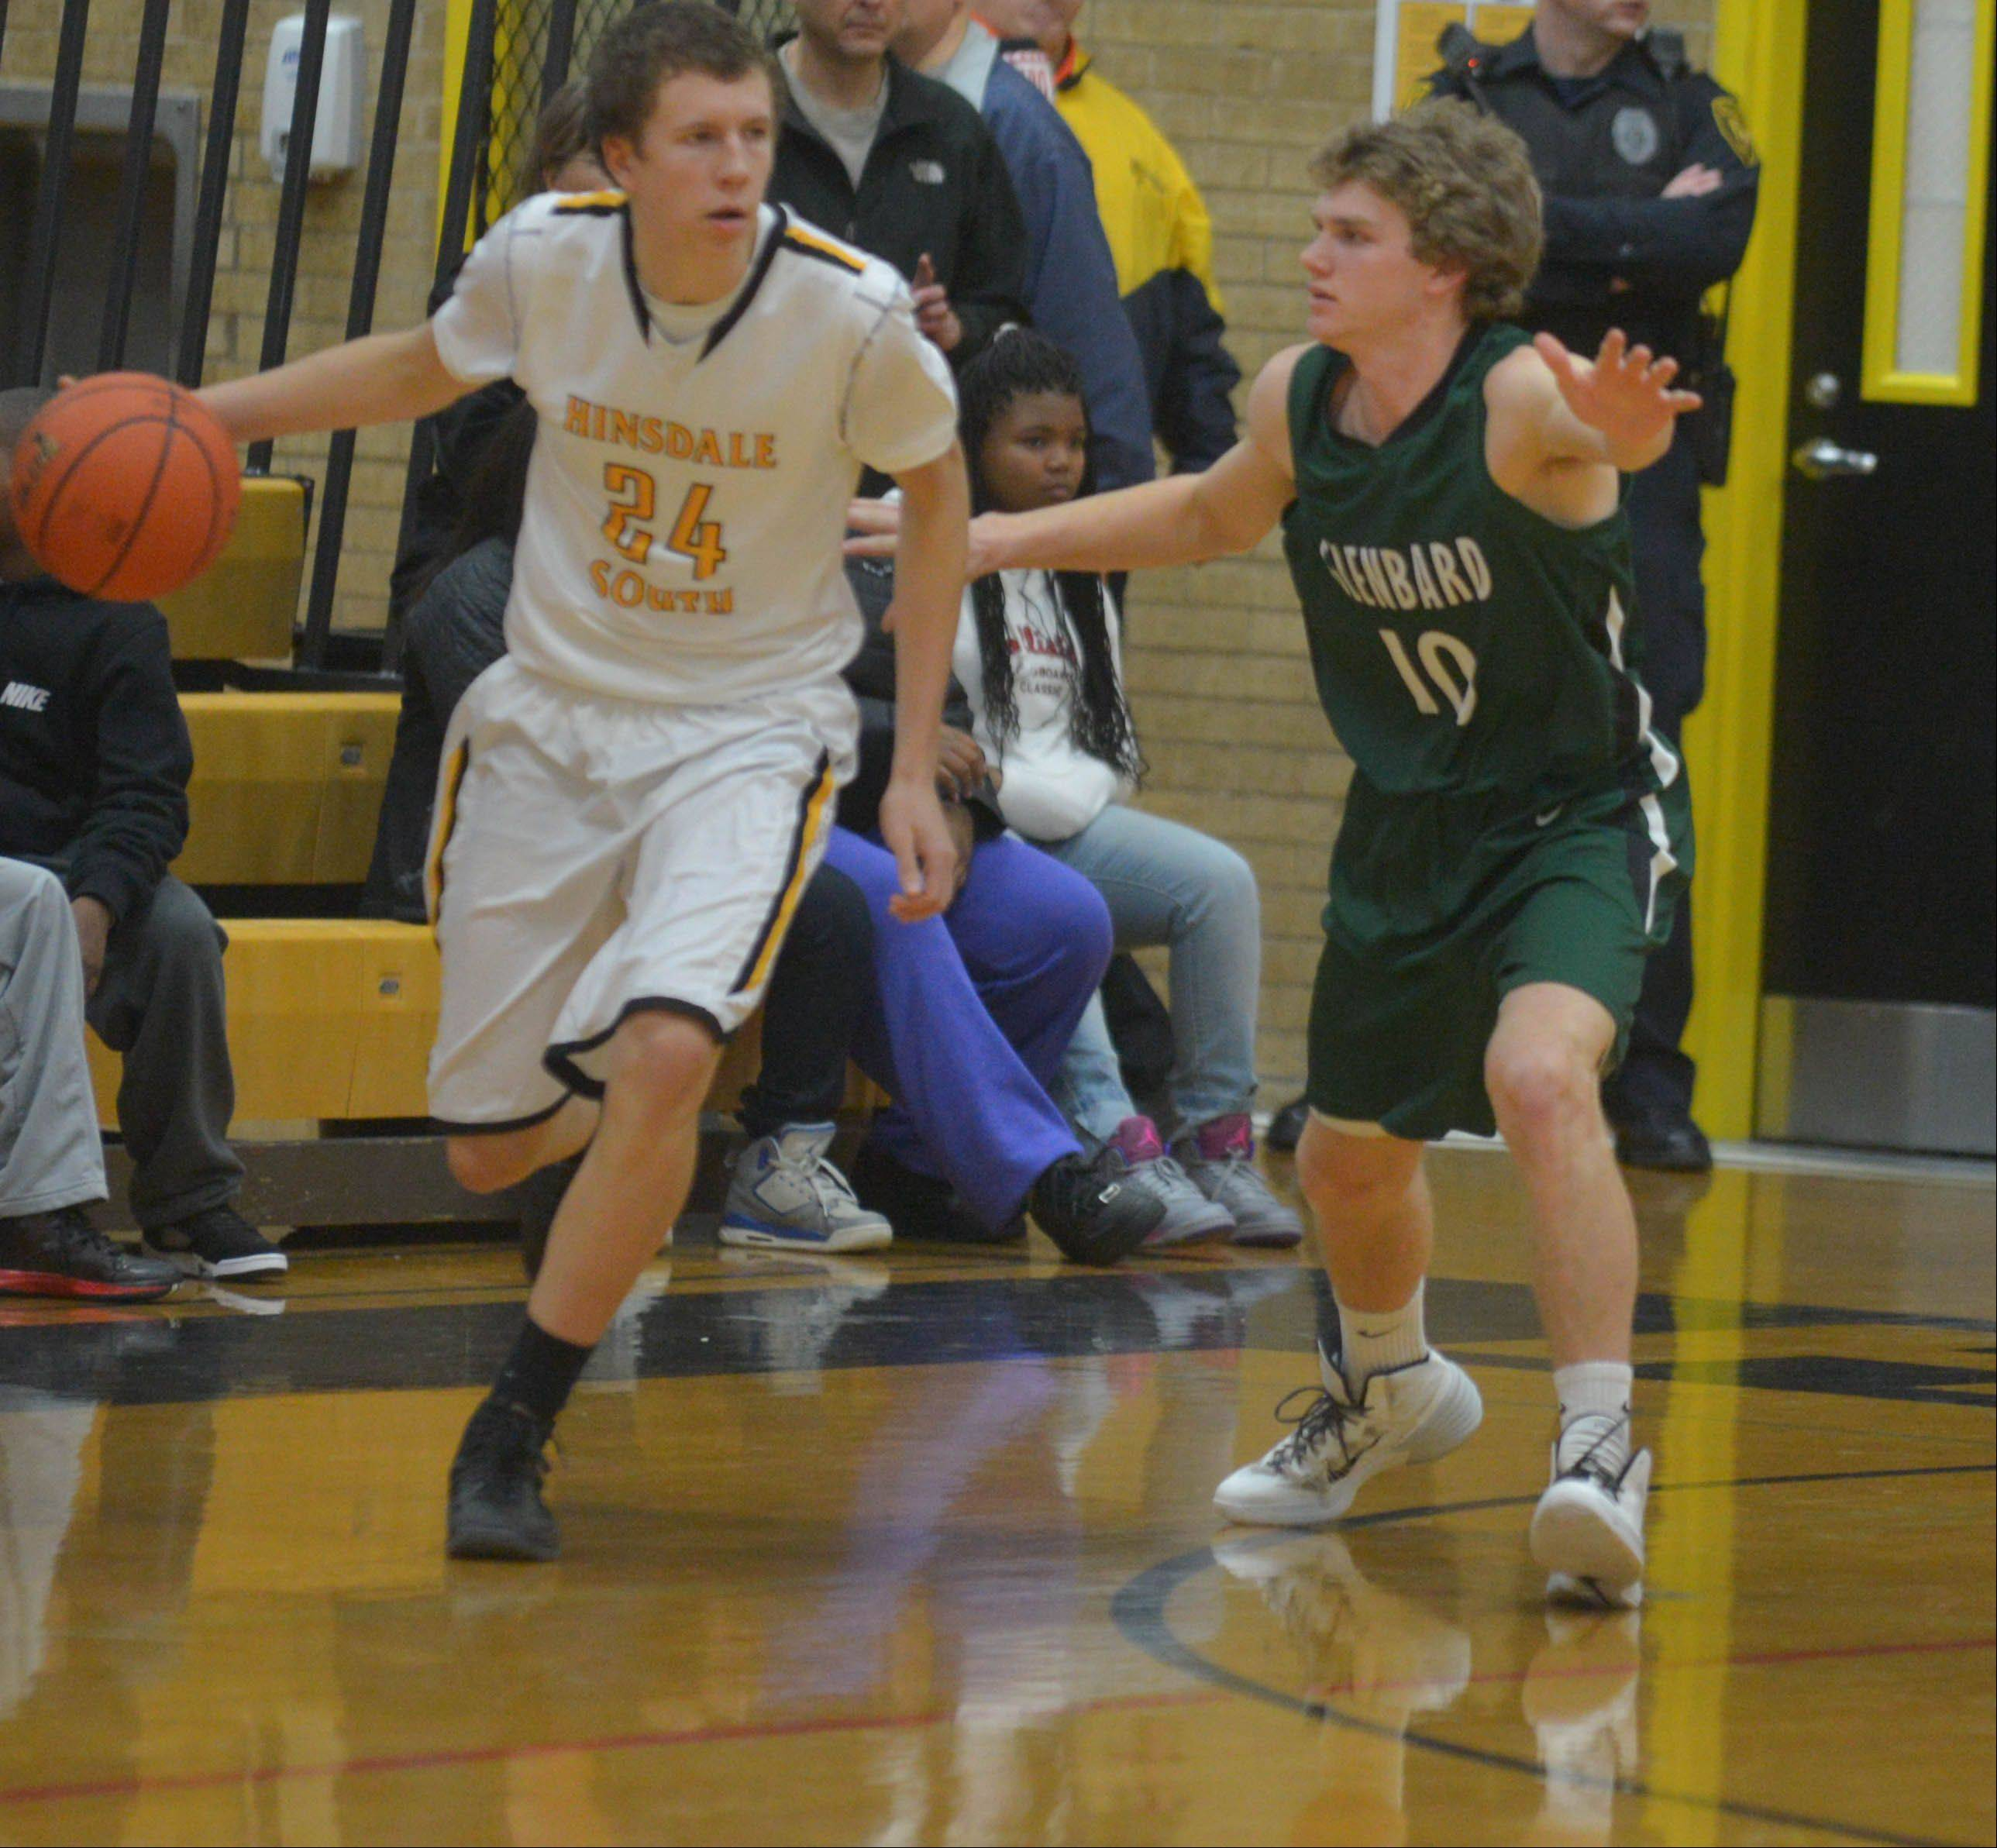 Laurynas Motuzis,left, of Hinsdale South,moves the ball while Max Montgomery of Glenbard West blocks during the Glenbard West at Hinsdale South boys basketball game Wednesday.